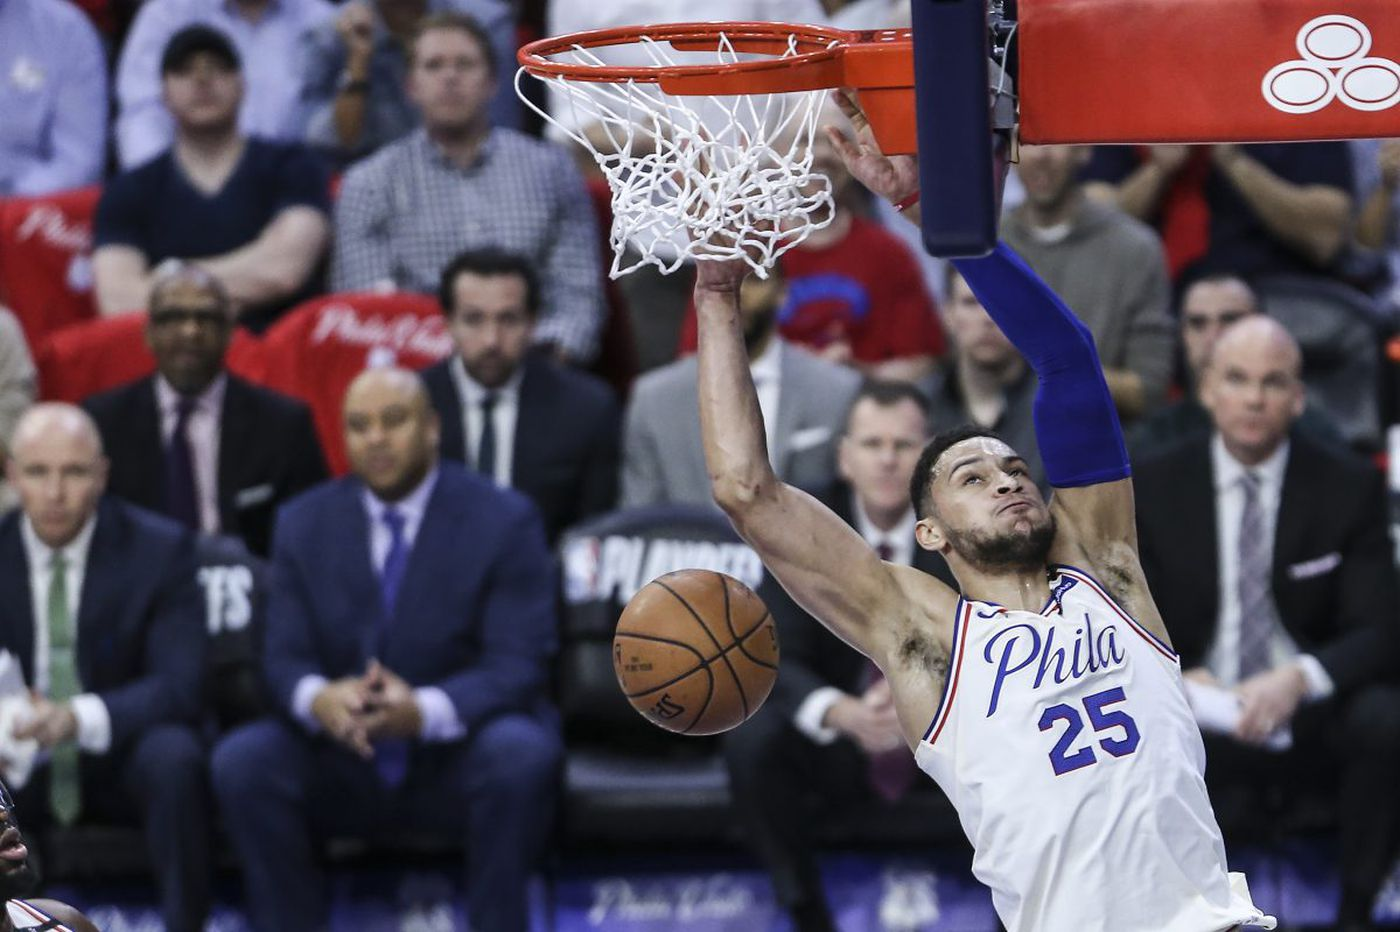 Sixers stay alive vs. Celtics, supporters worry over Painted Bride, Philly is lonely | Morning Newsletter